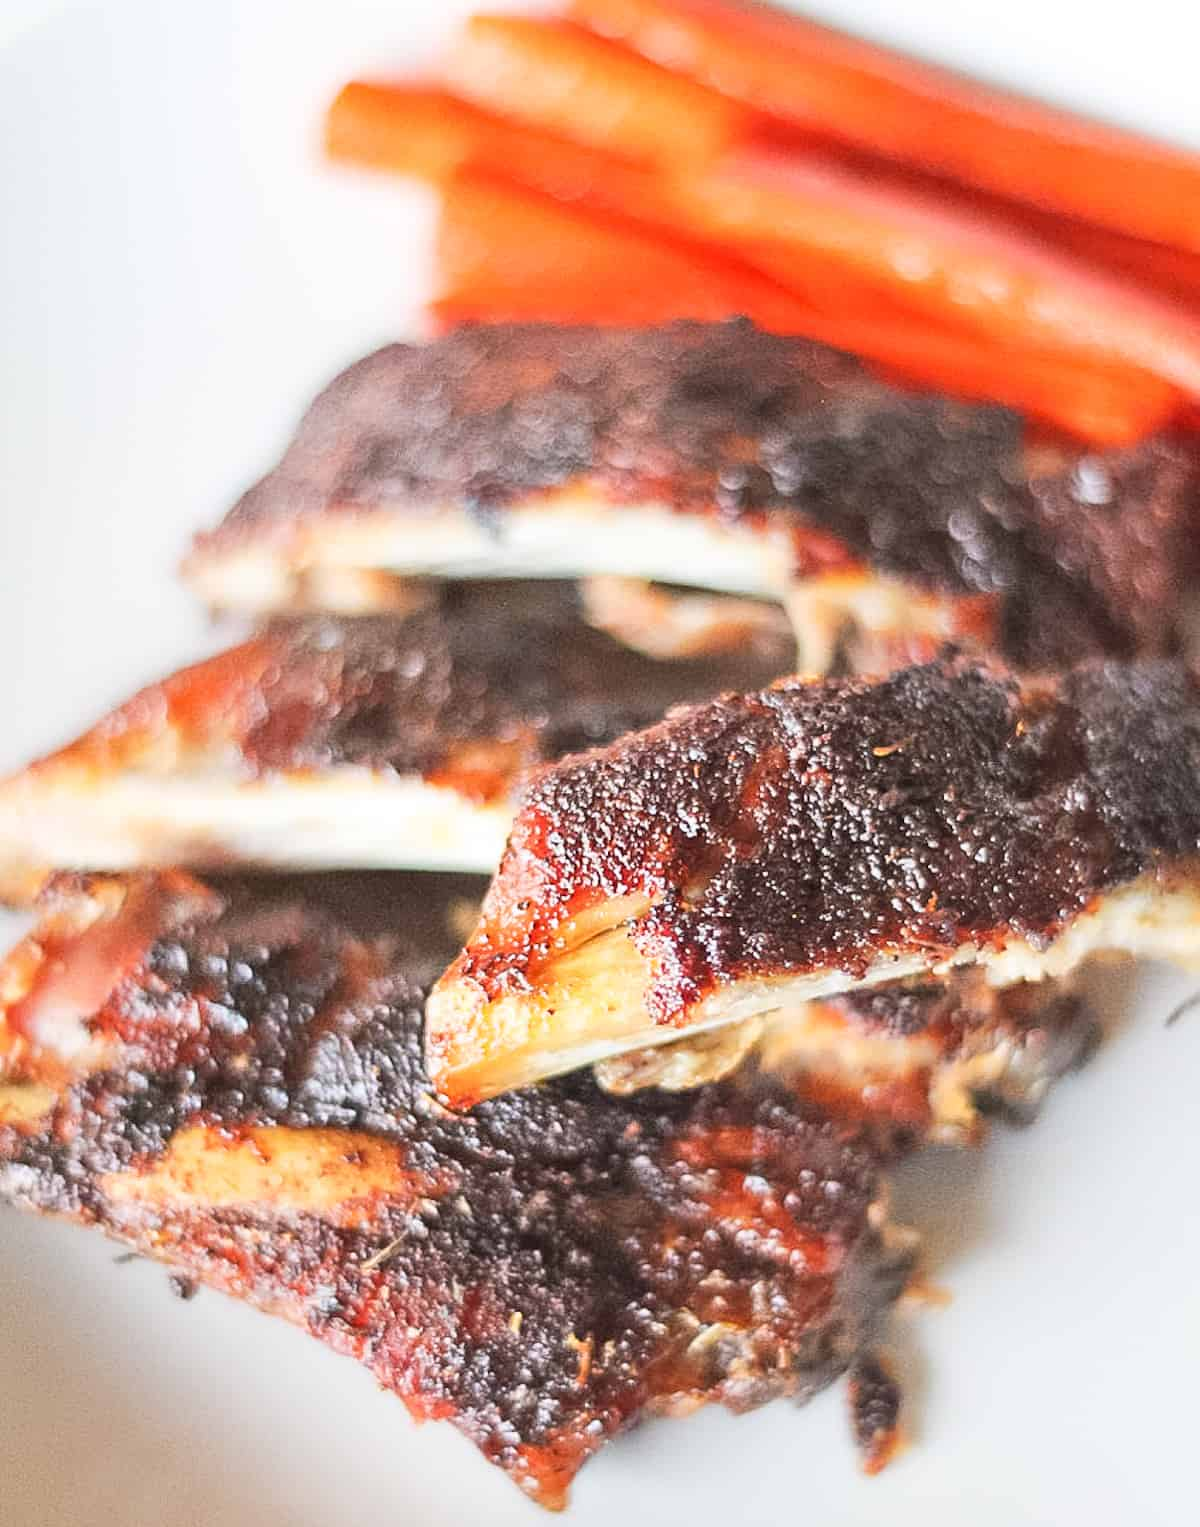 Sliced ribs on a plate with carrots.